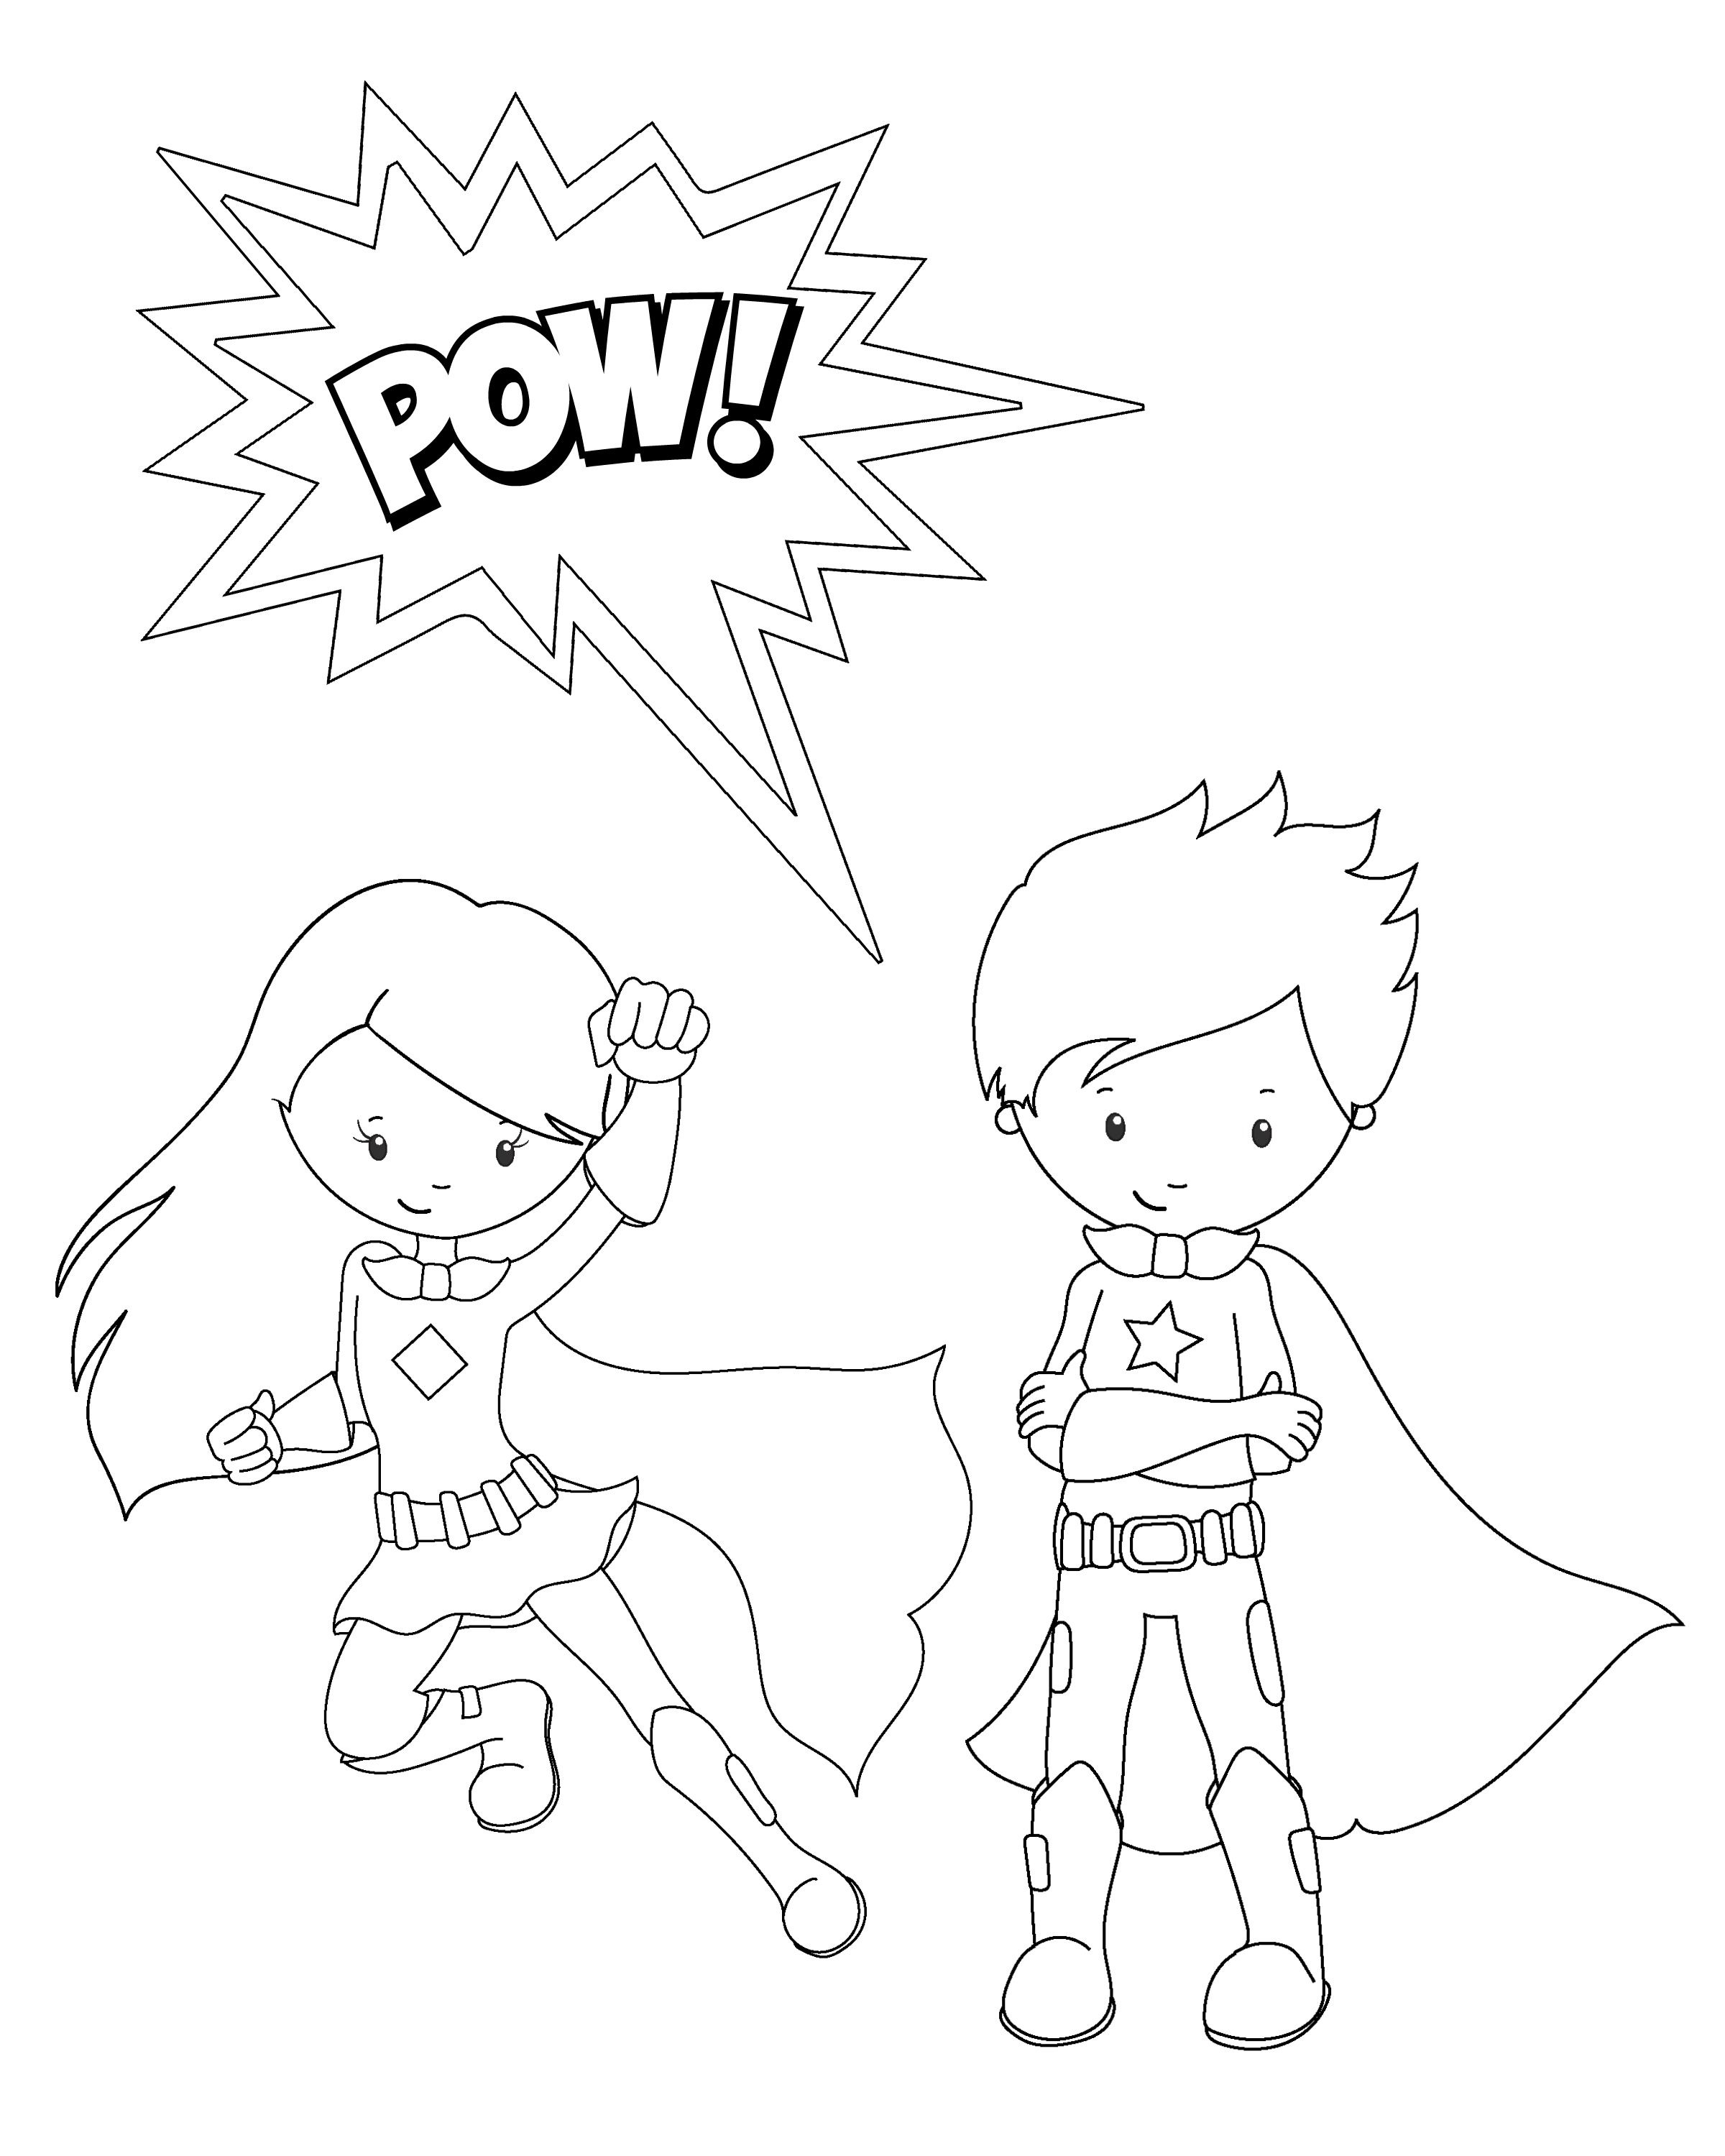 preschoolers coloring pages Download-Superhero Coloring Pages for Preschoolers Printable Superhero Coloring Book Pages Awesome 0 0d Spiderman 2-e